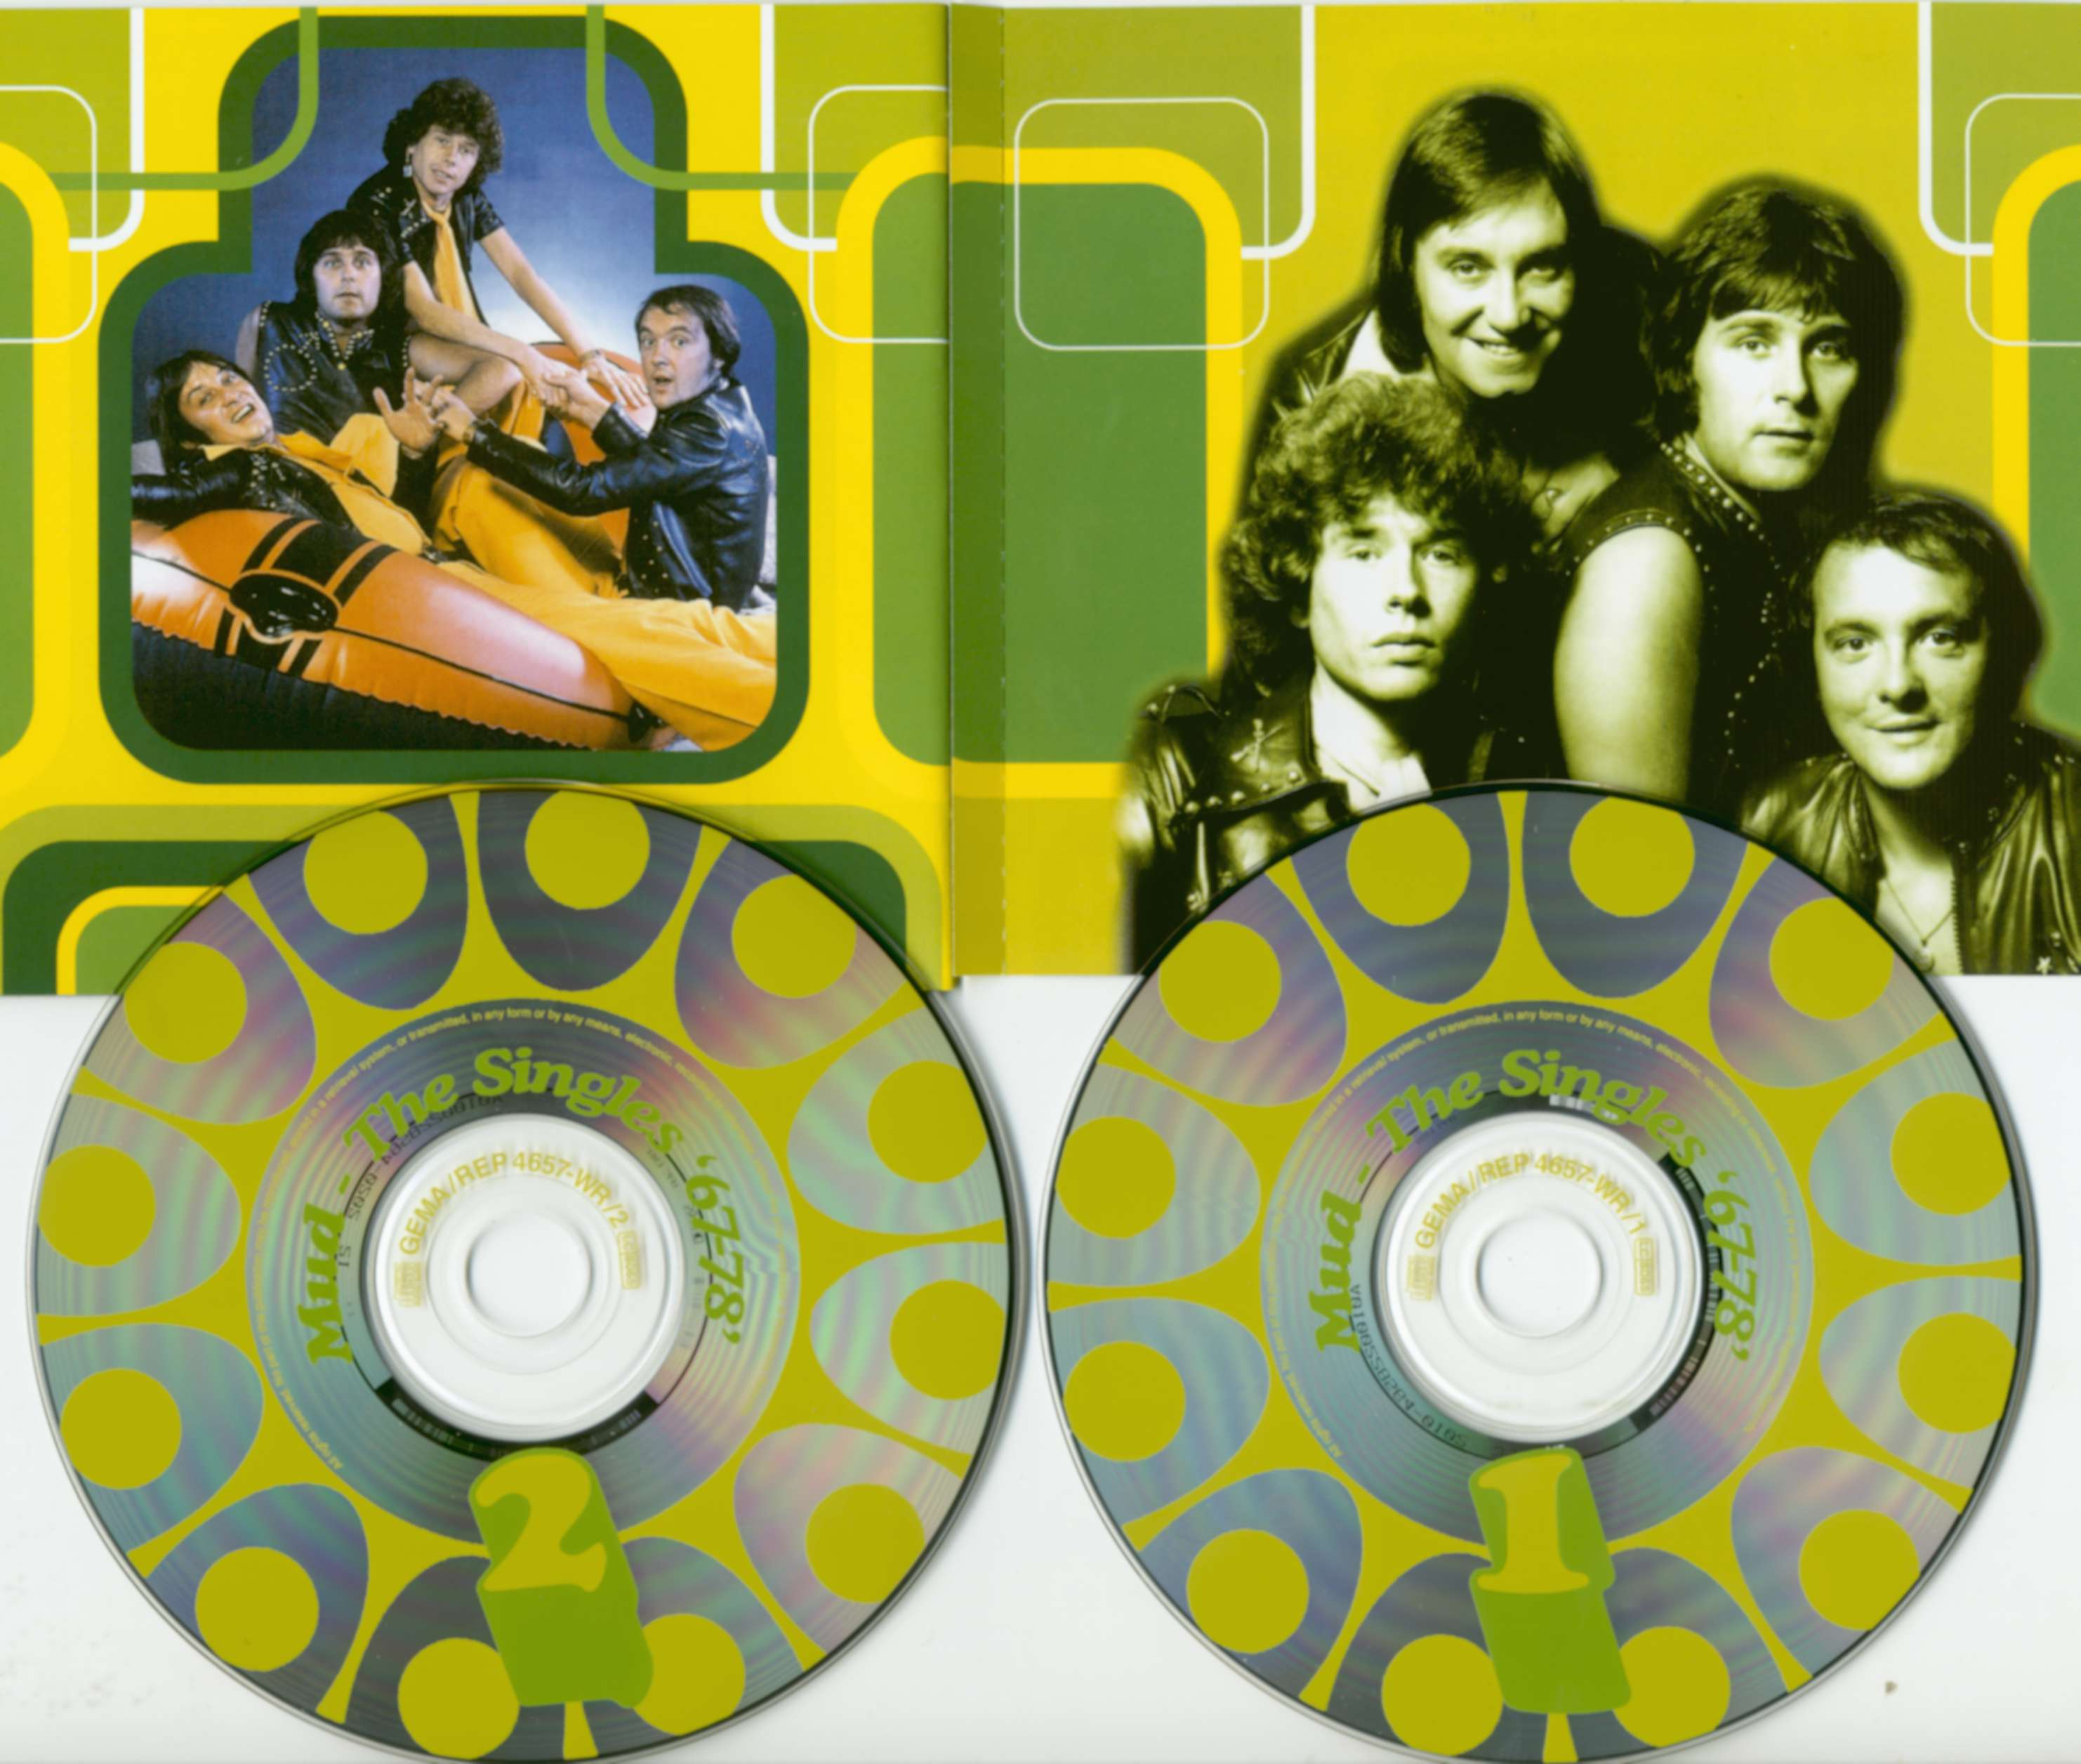 Mud Cd The Singles 1967 1978 2 Cd Bear Family Records